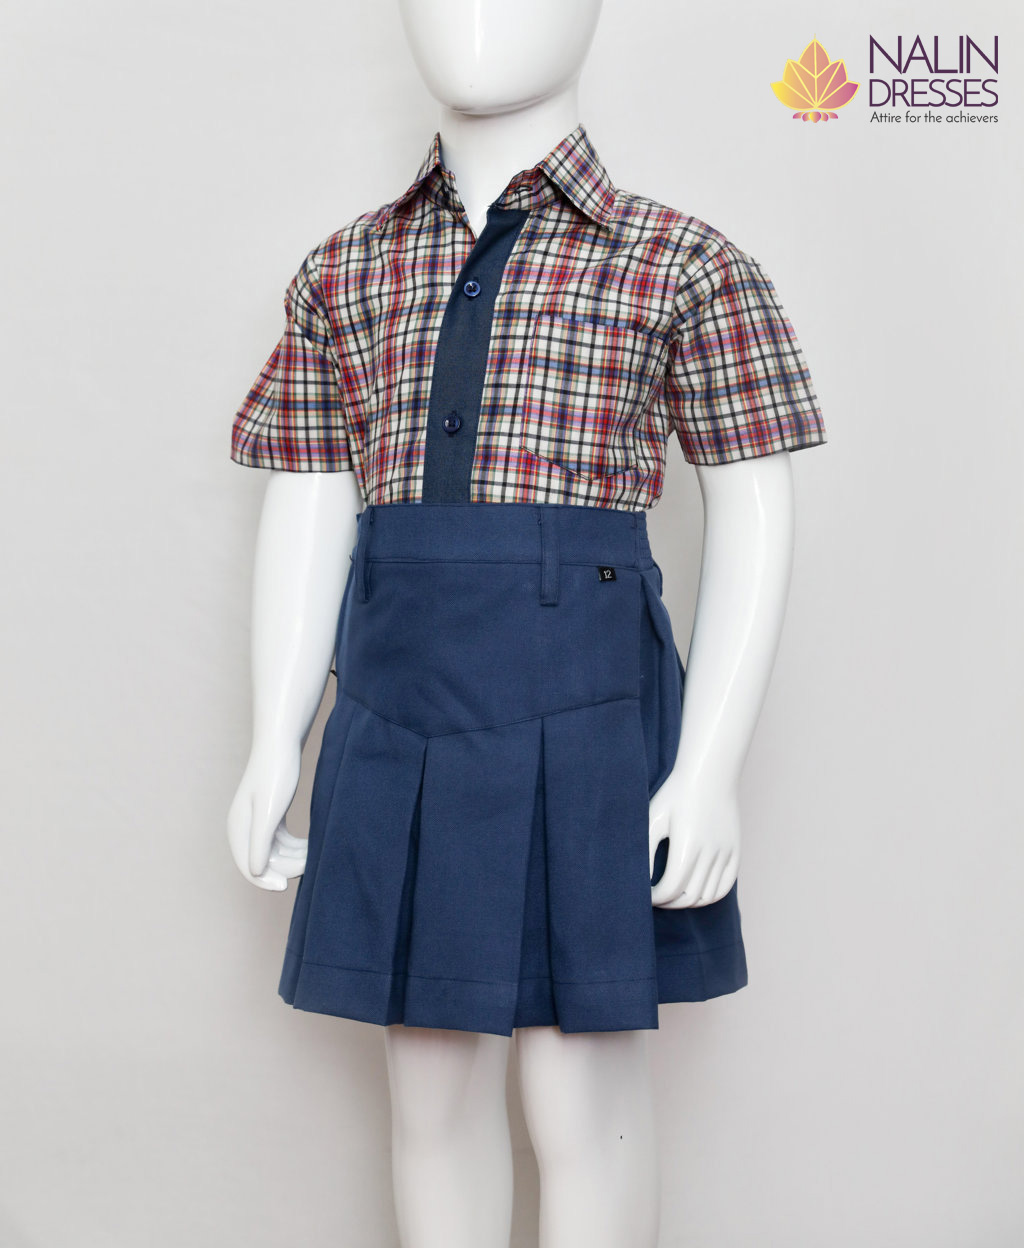 Checkered shirt with blue buttons and navy blue skirt